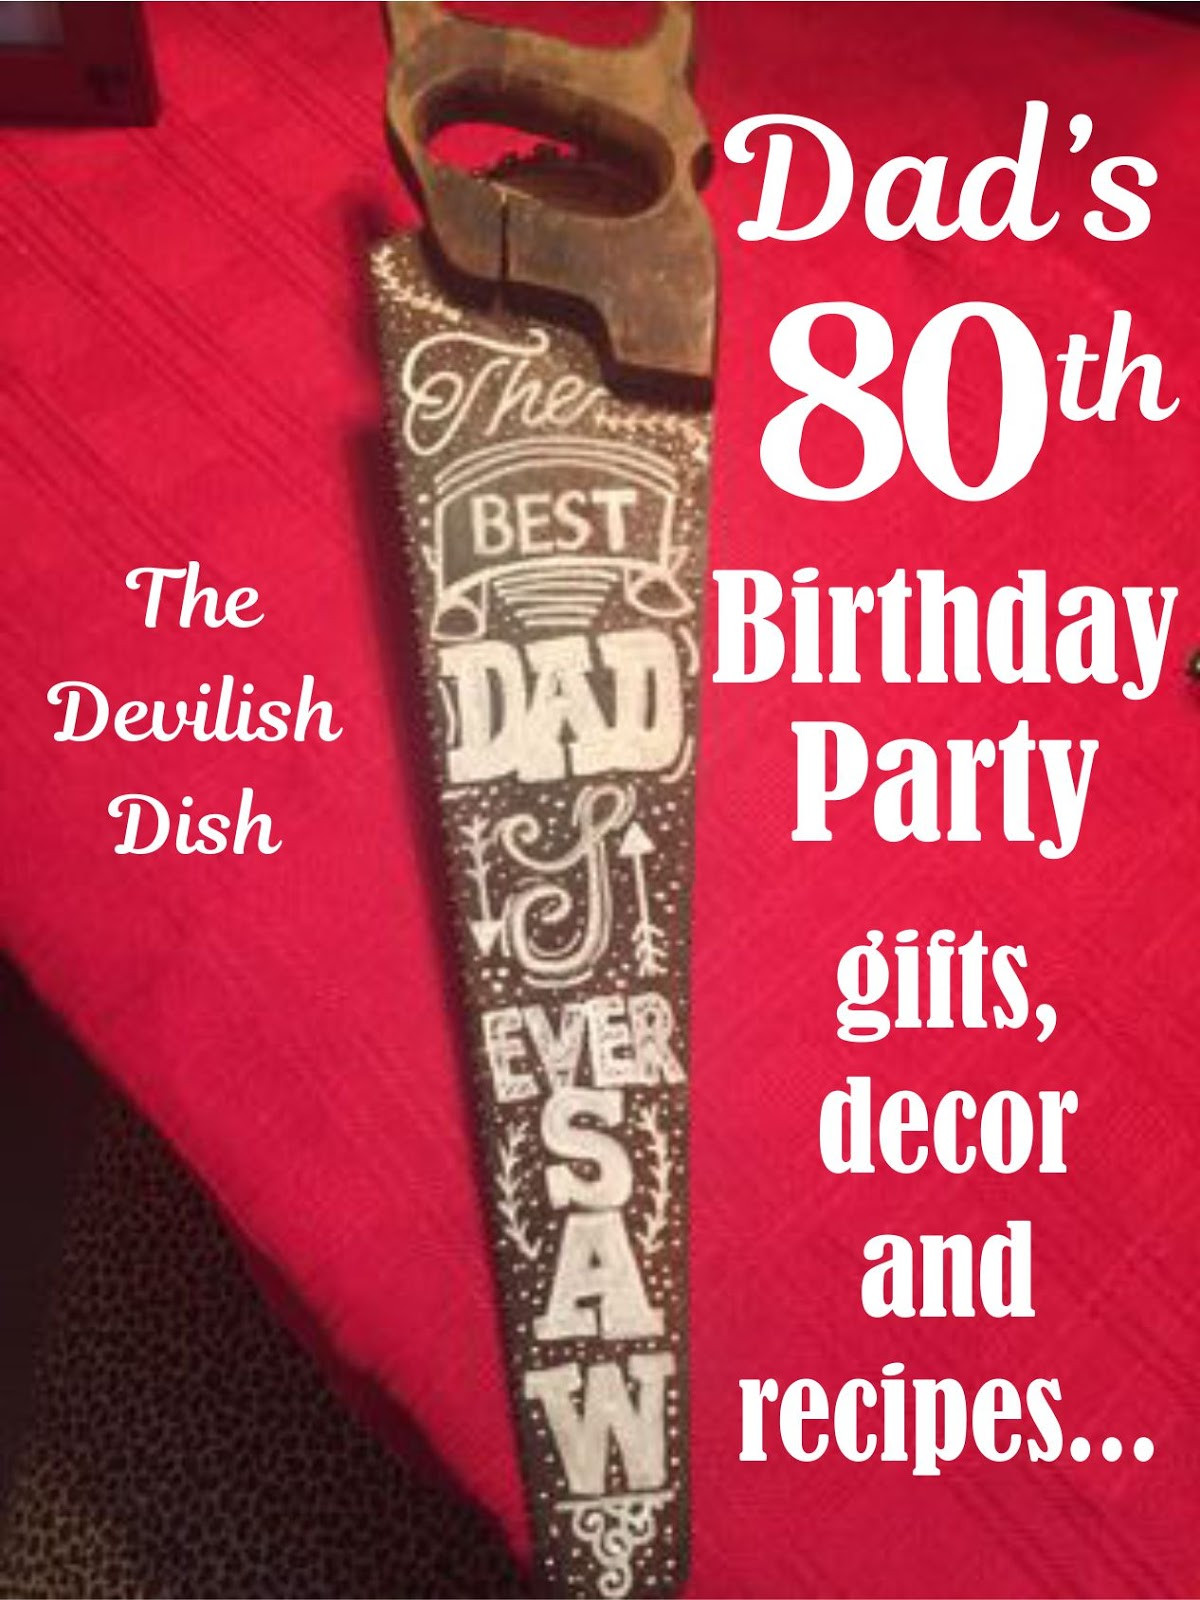 80Th Birthday Party Ideas For Dad  The Devilish Dish Dad s 80th Birthday Party with Gifts